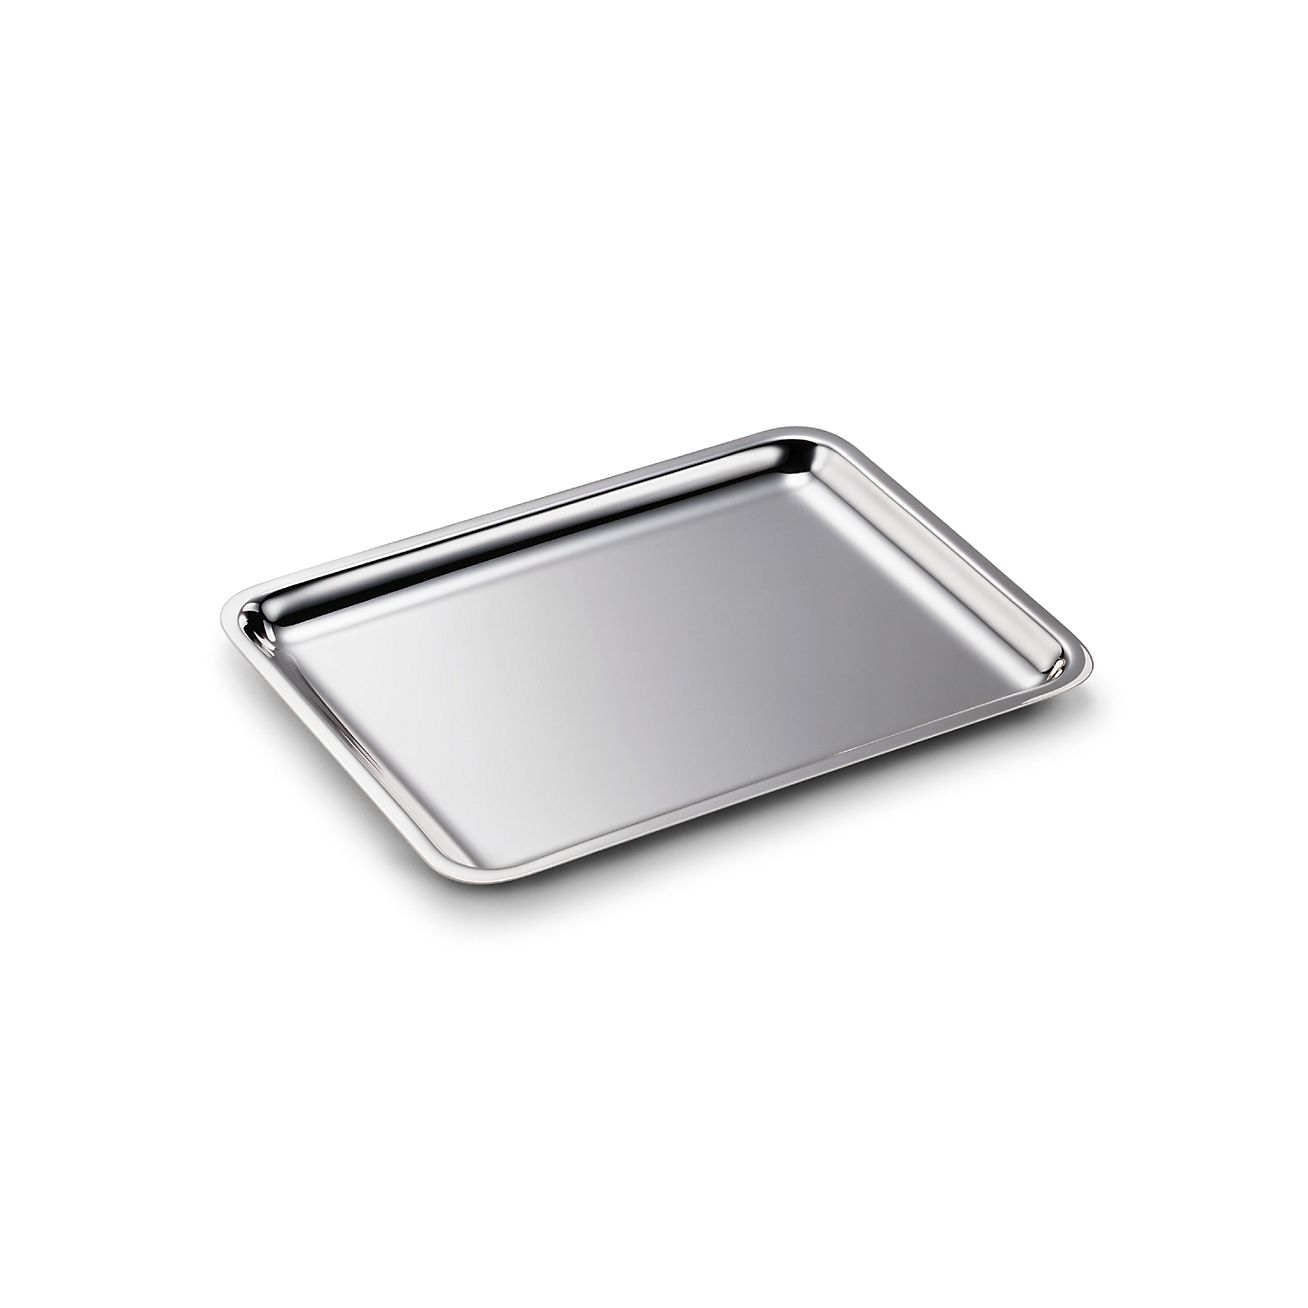 Very best Tiffany Classic rectangular tray in sterling silver. | Tiffany & Co. TH67